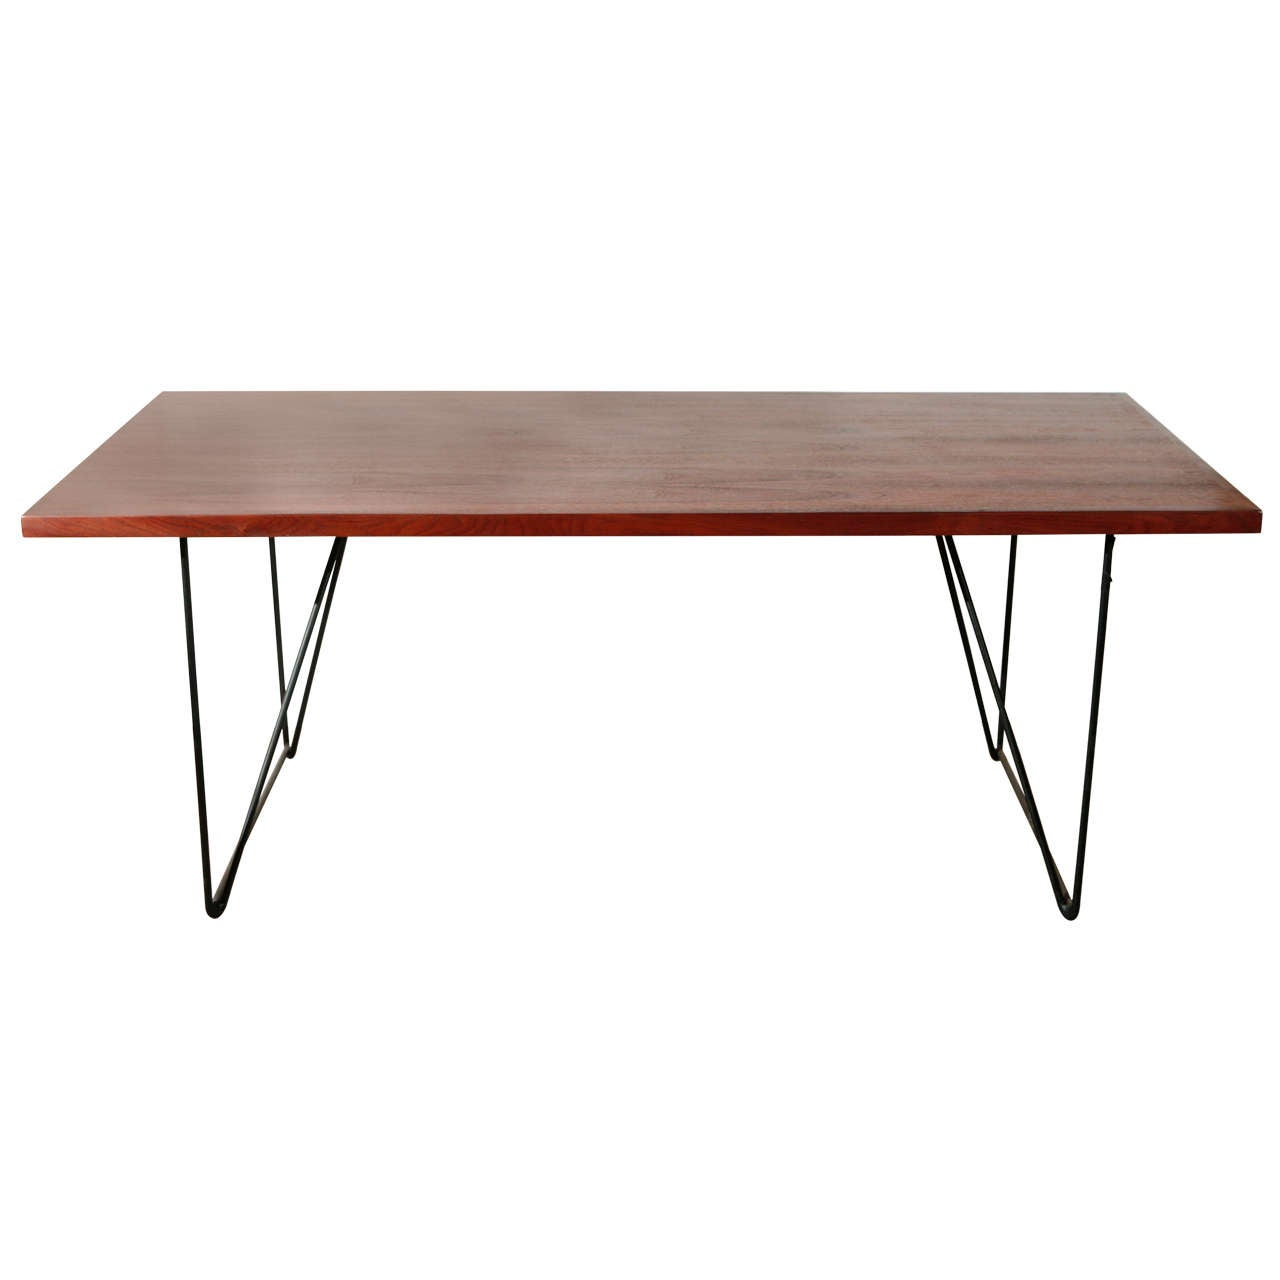 Luther Conover Table For Sale at 1stdibs